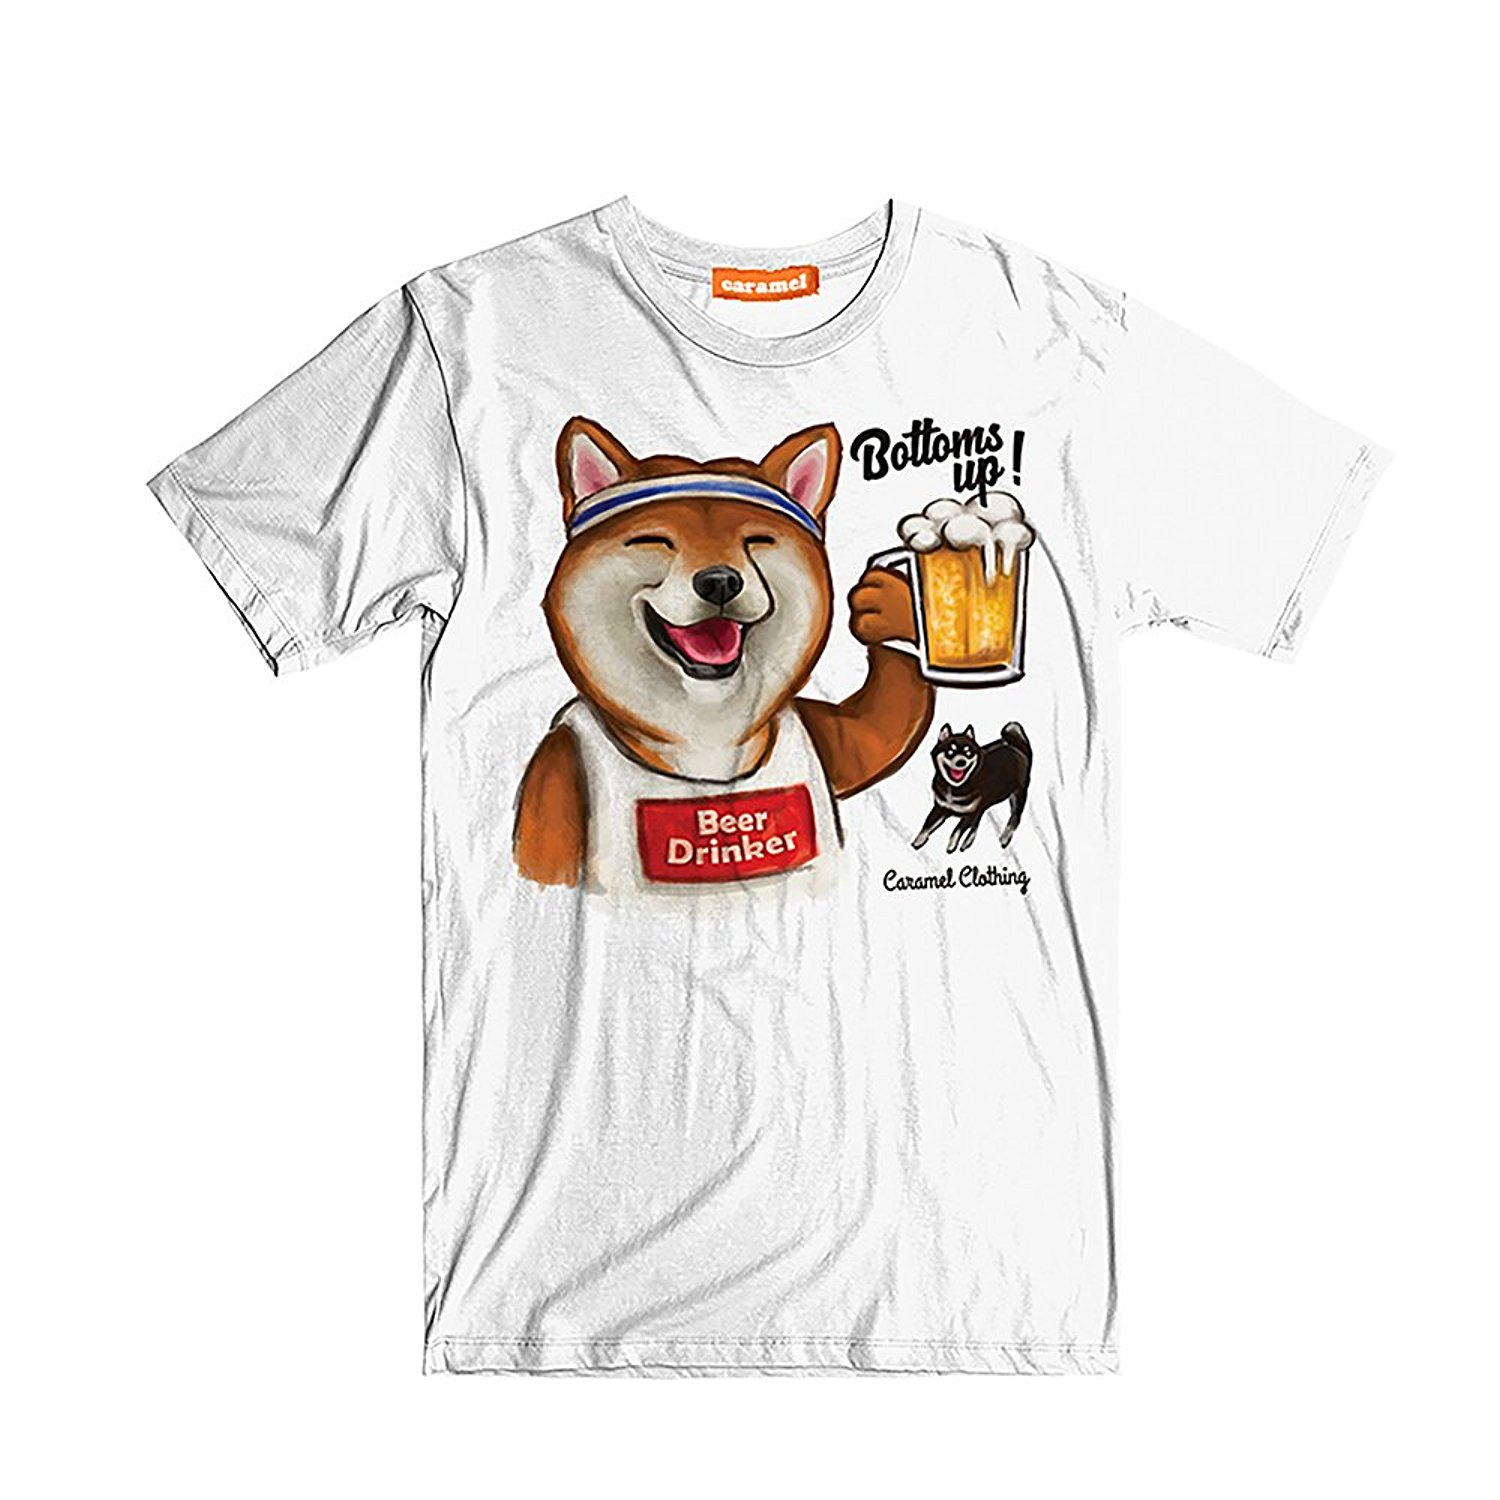 T-shirts Tops & Tees 2018 New Summer Slim Tee Shirt Corgi Unisex Short Sleeves Crew Neck Comfy T Shirt